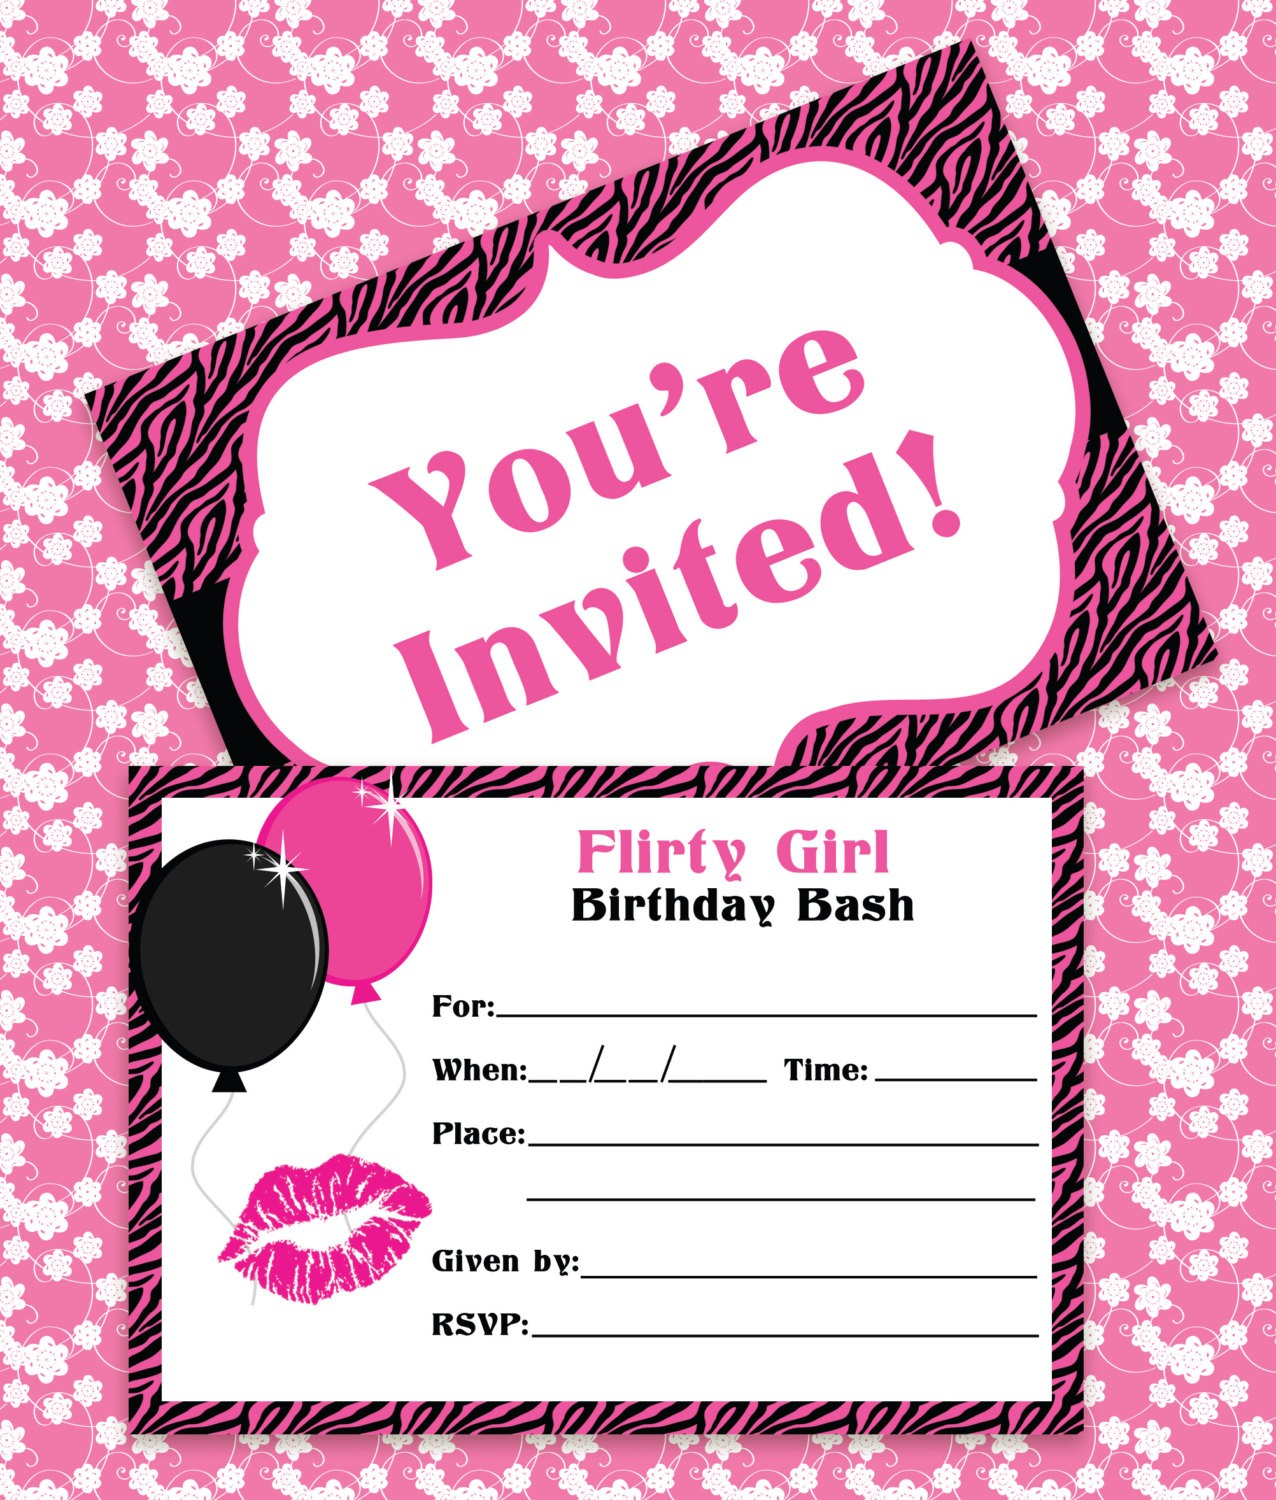 birthday invitation card design online free ; birthday-invitations-online-free-and-your-charming-Birthday-Invitation-Cards-invitation-card-design-using-popular-ornaments-8